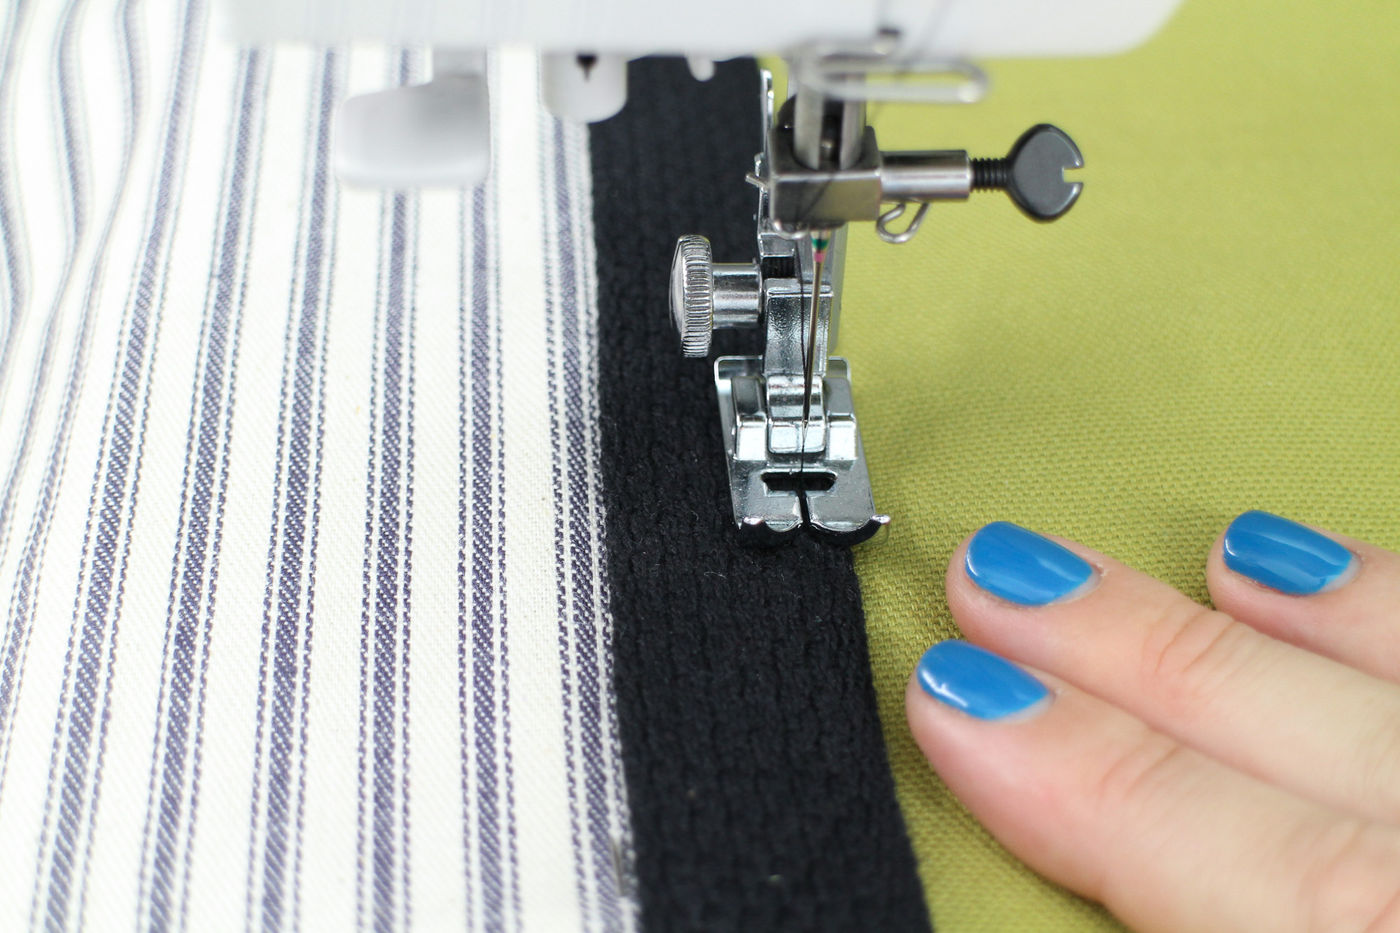 Sew on the Handles